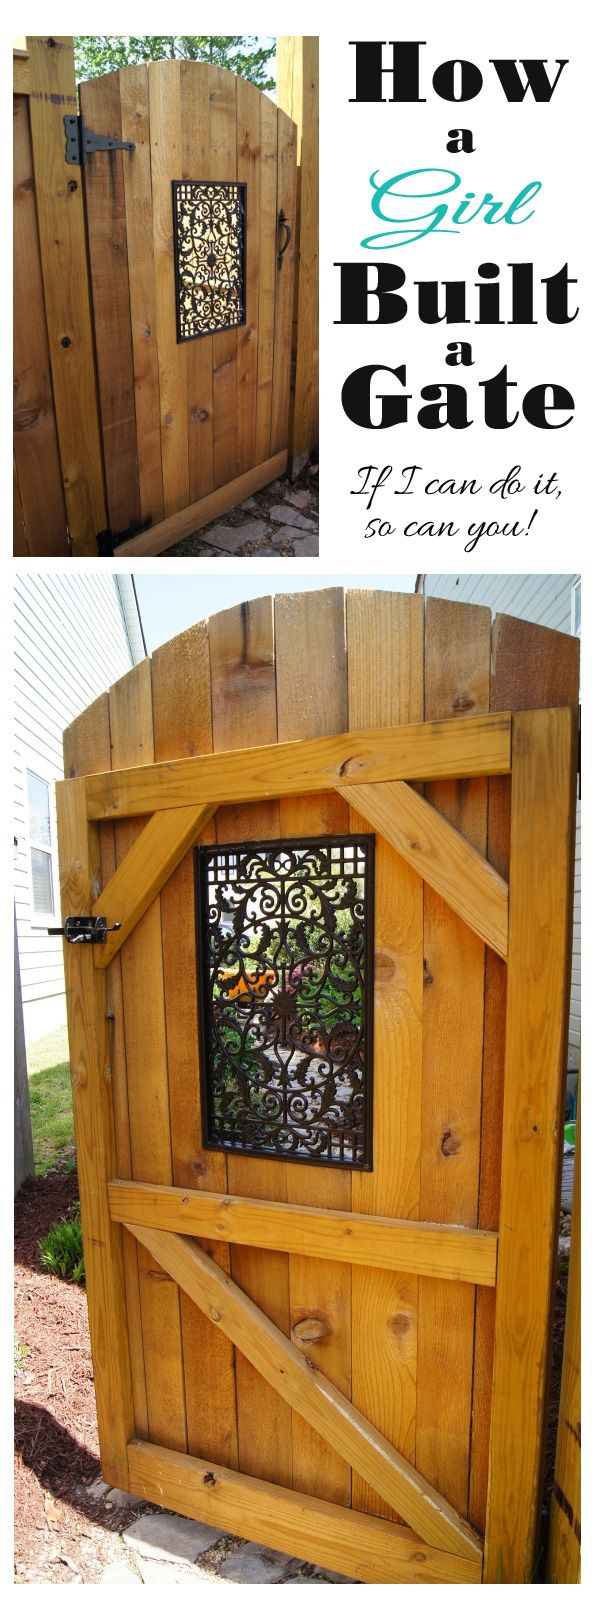 build a side gate with a decorative window